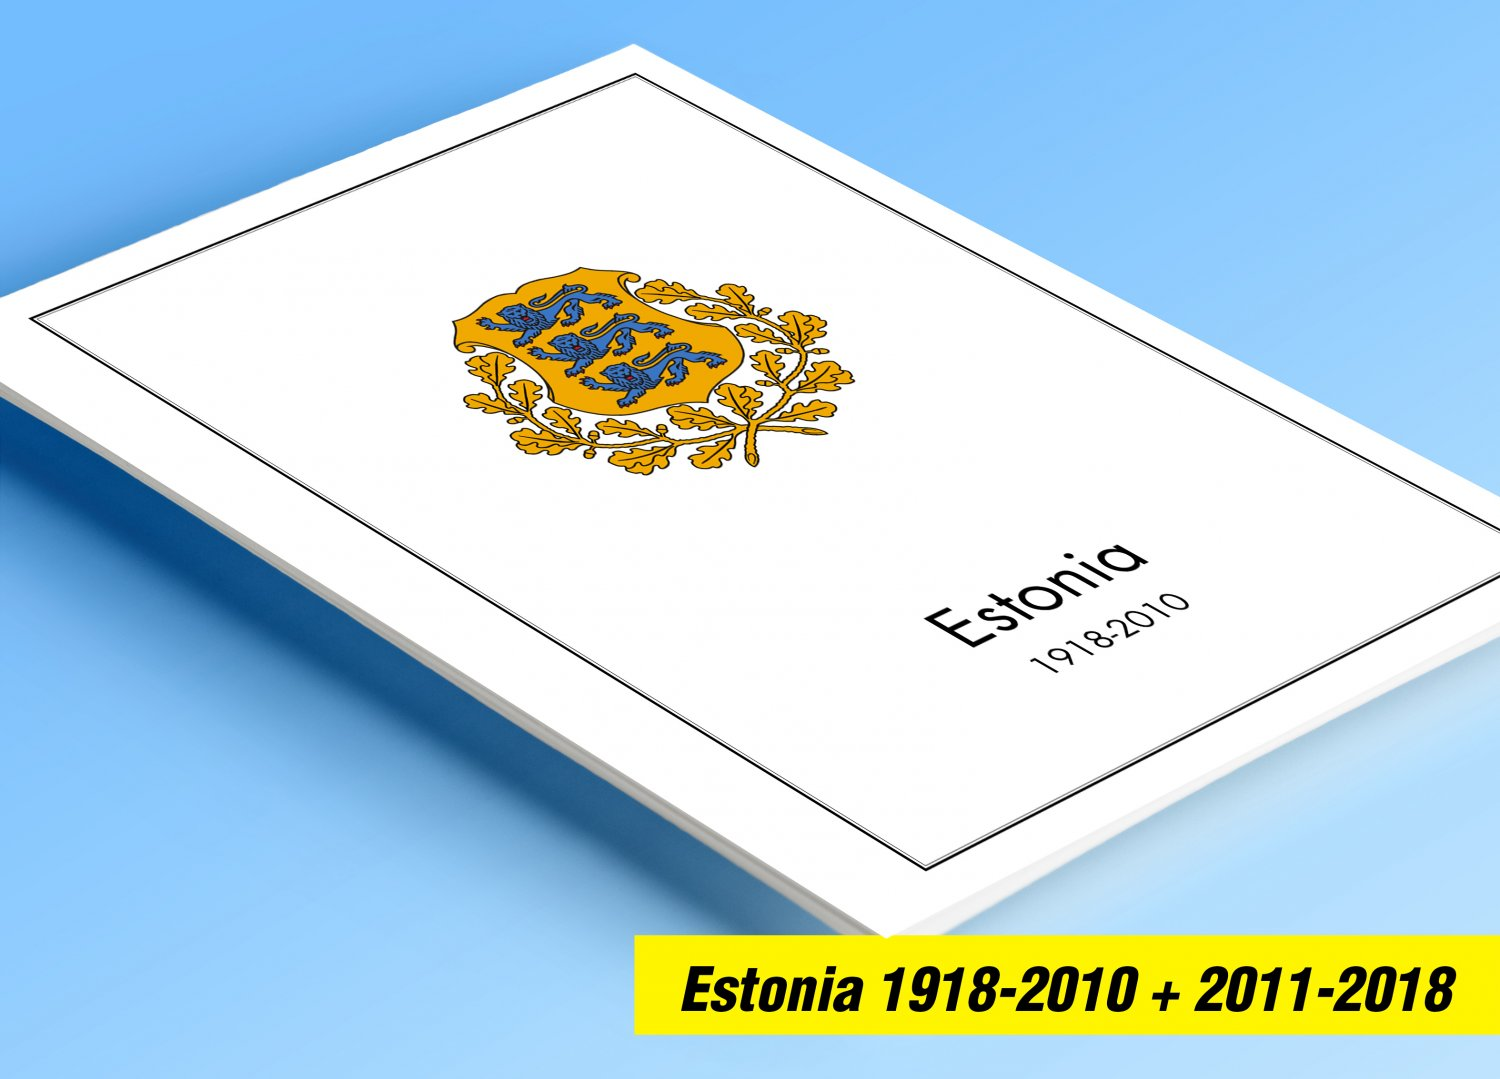 COLOR PRINTED ESTONIA 1918-2010 + 2011-2018 STAMP ALBUM PAGES (103 illustrated pages)